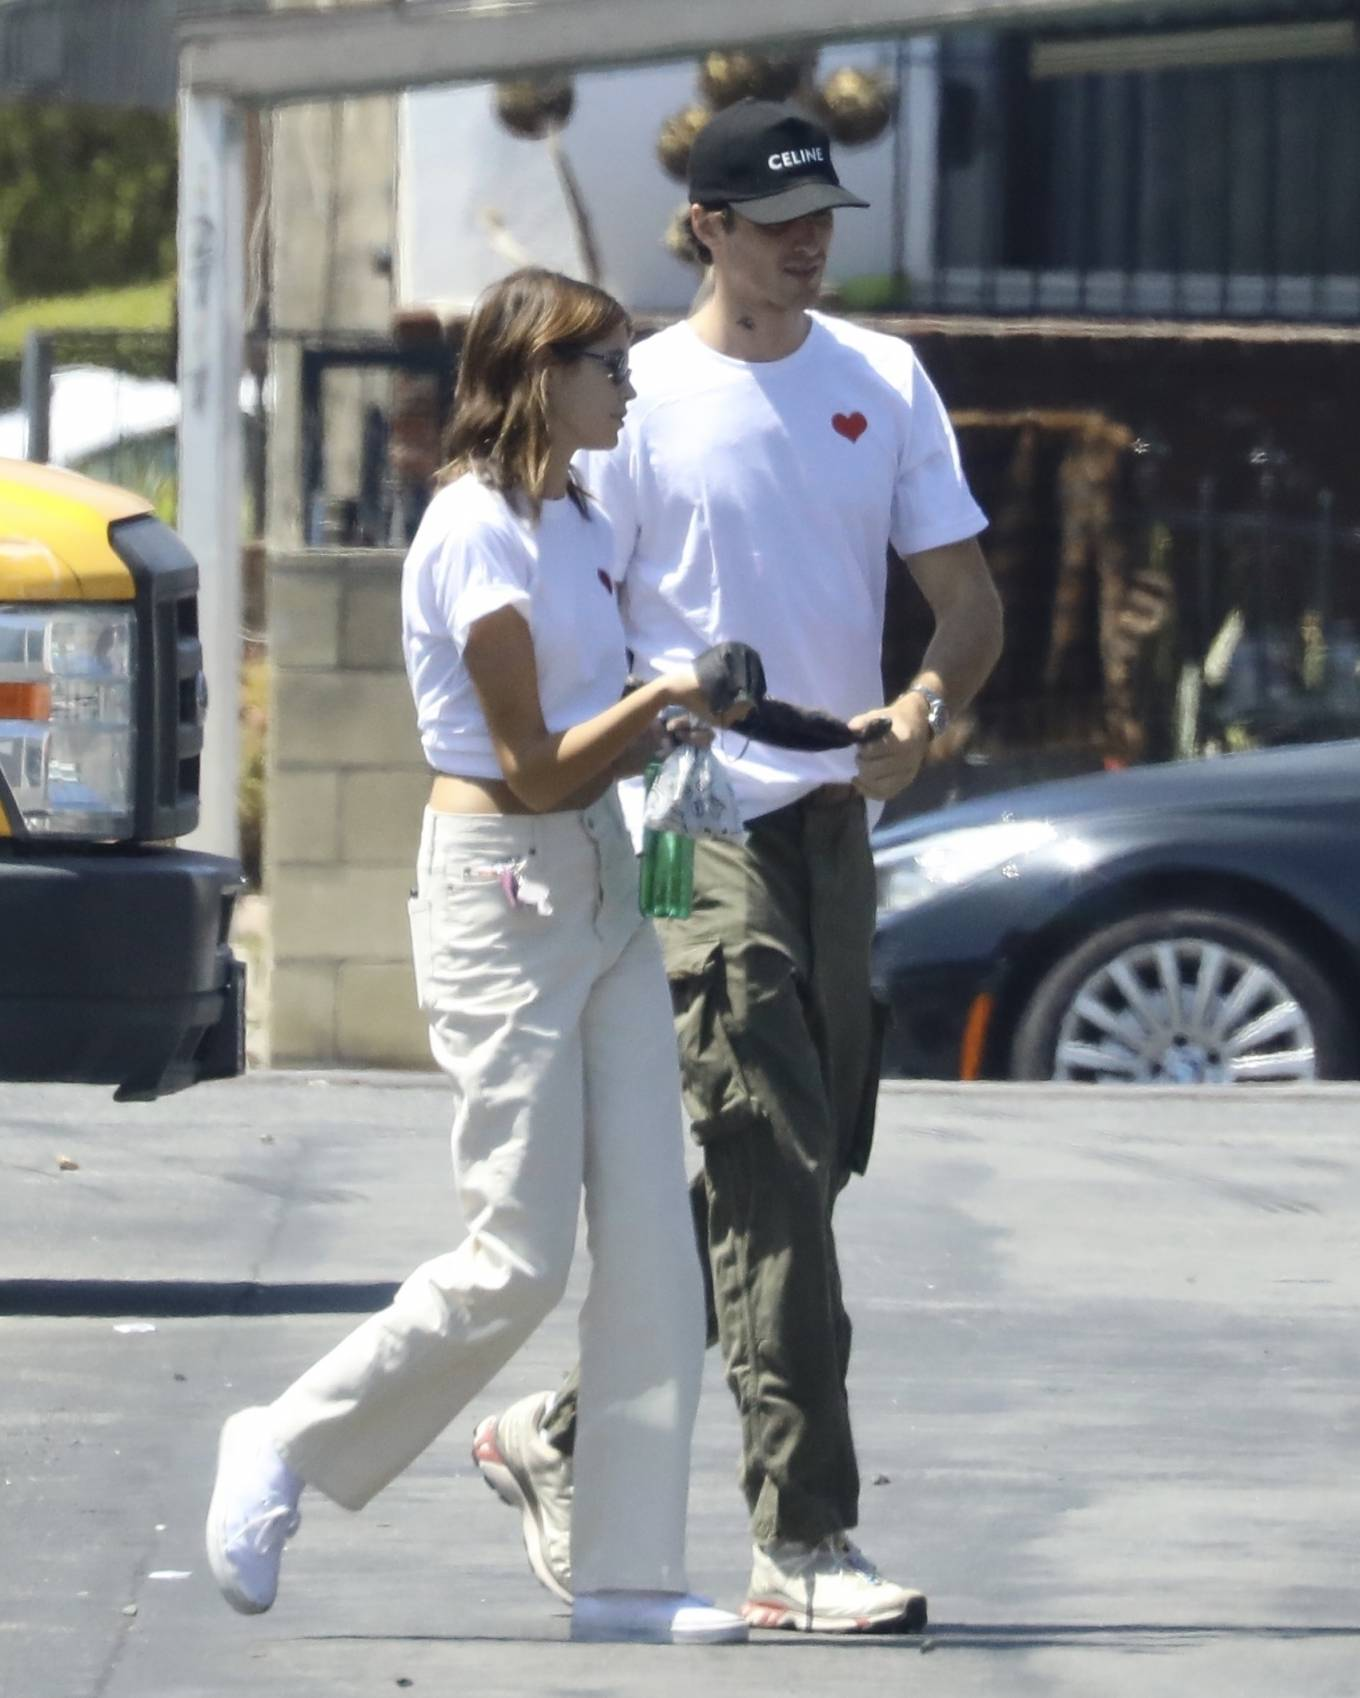 Kaia Gerber wearing round white off white lace-up sneakers by Vans with flat heel